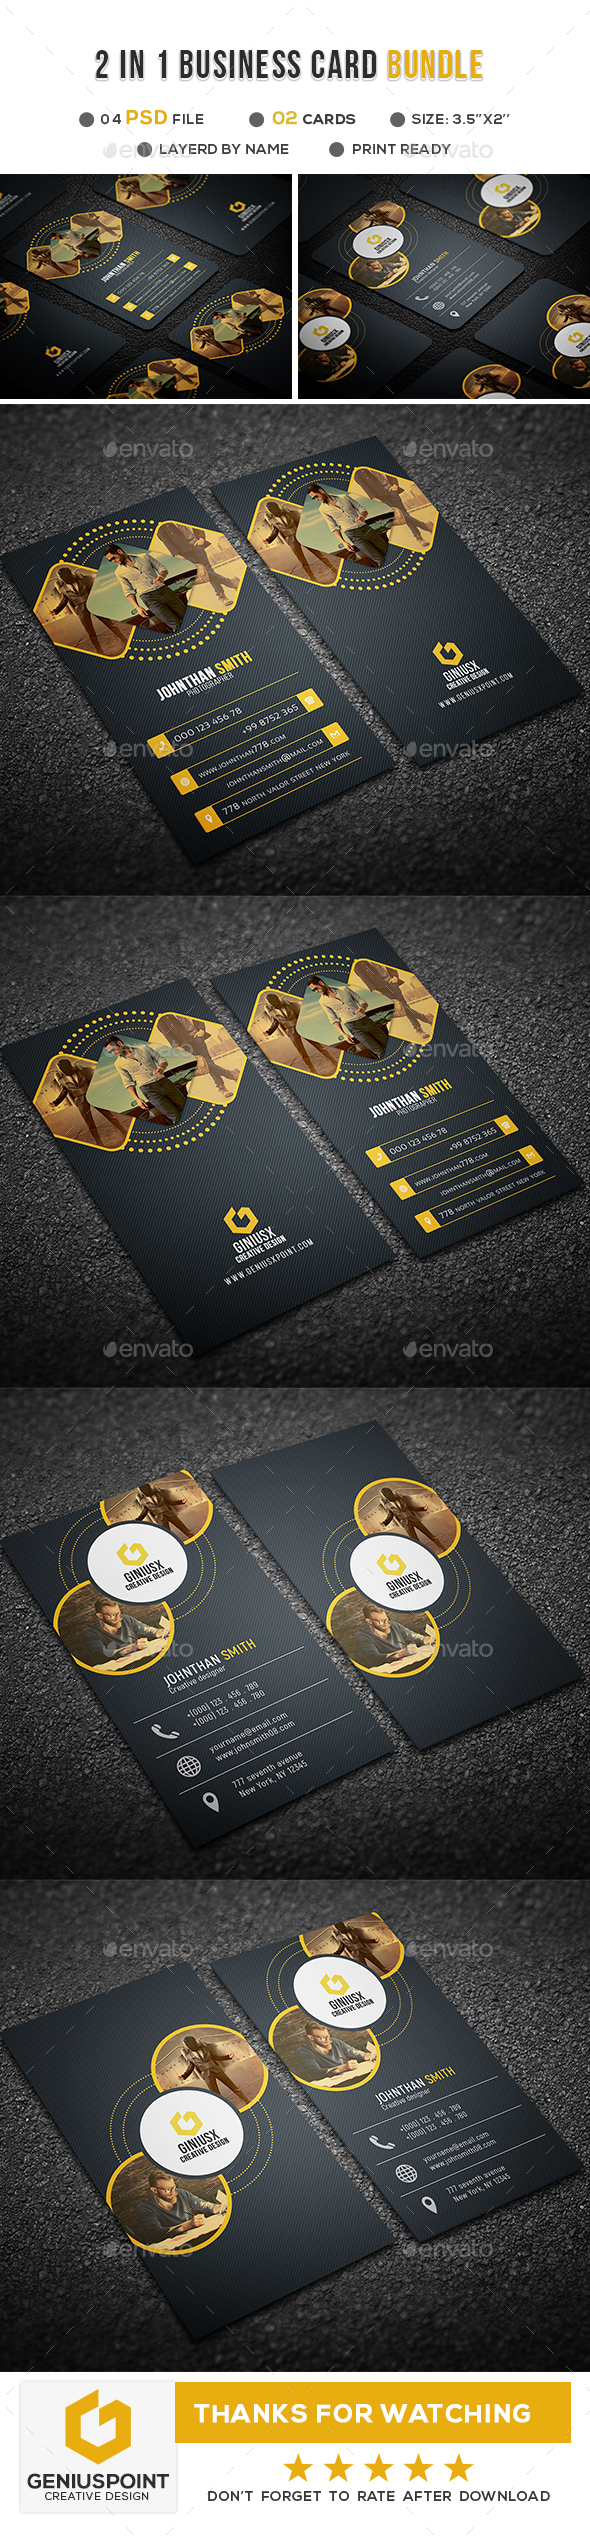 GraphicRiver 2 in 1 Business Card Bundle 20952606